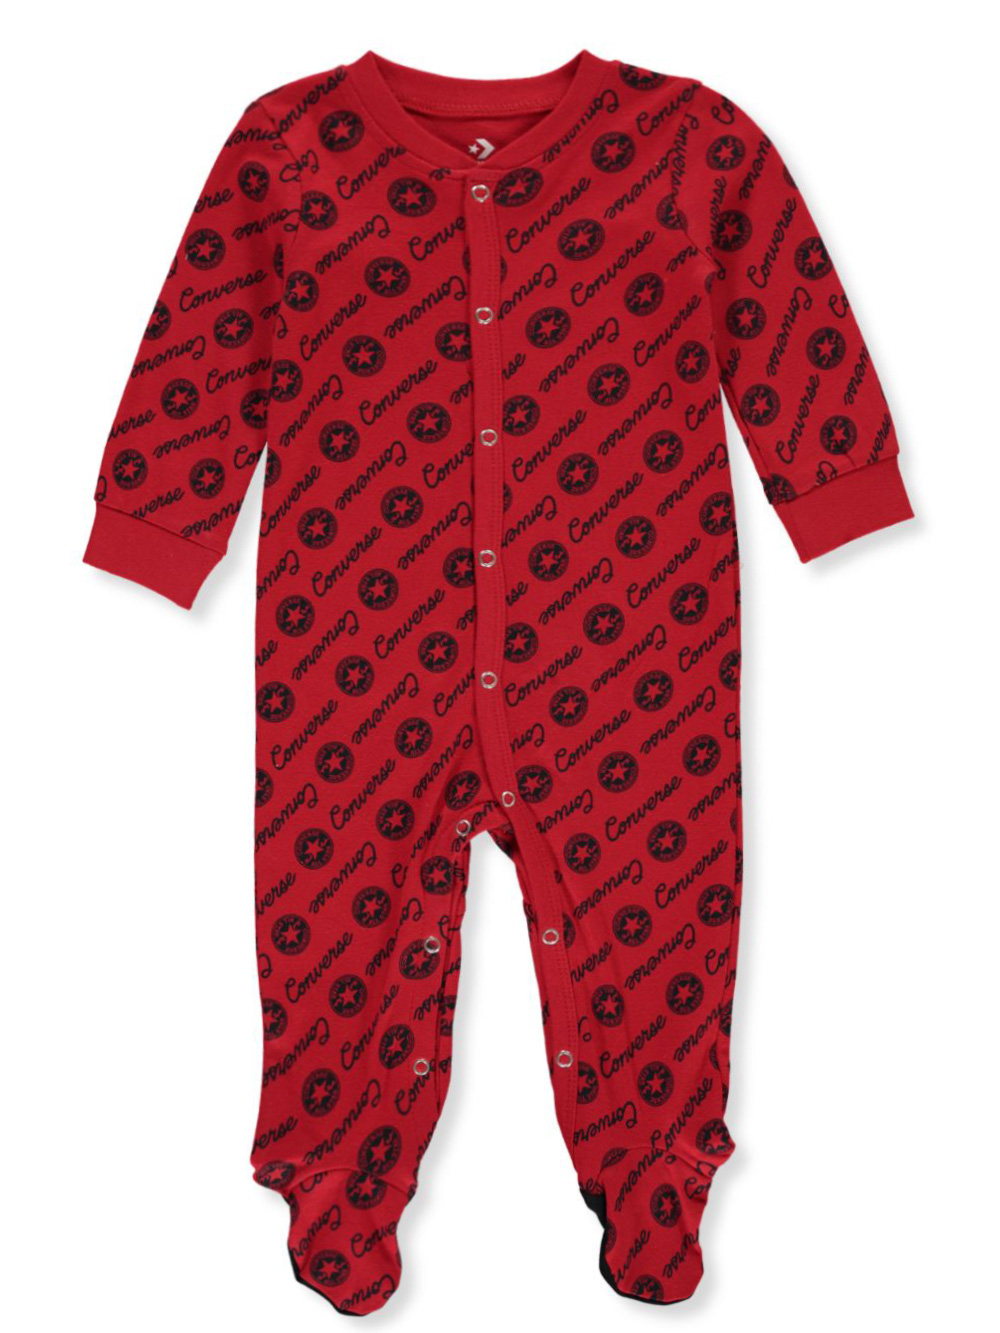 Boys Red Coveralls